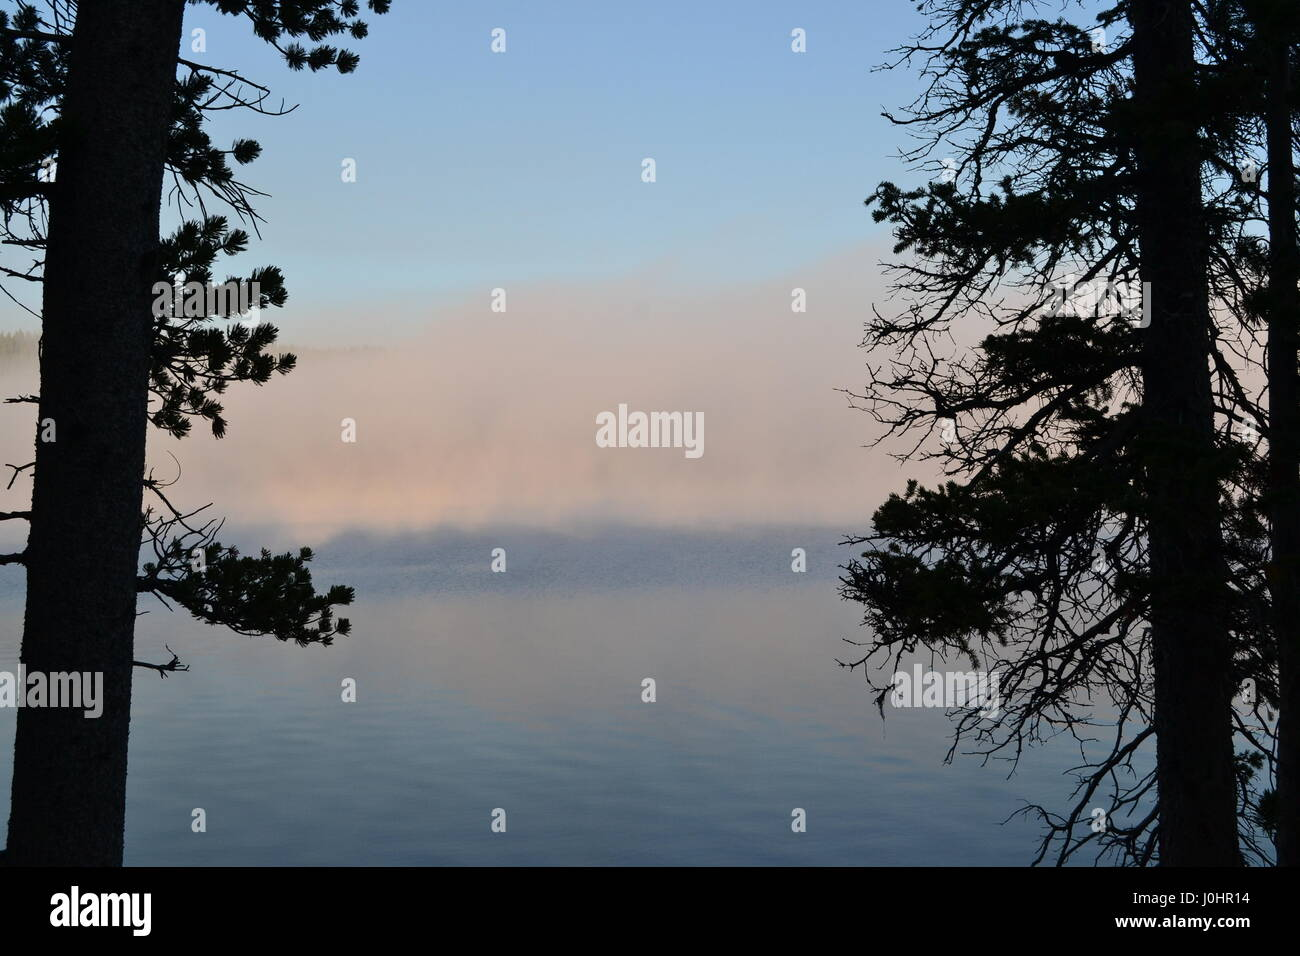 Lake mists between the trees - Stock Image